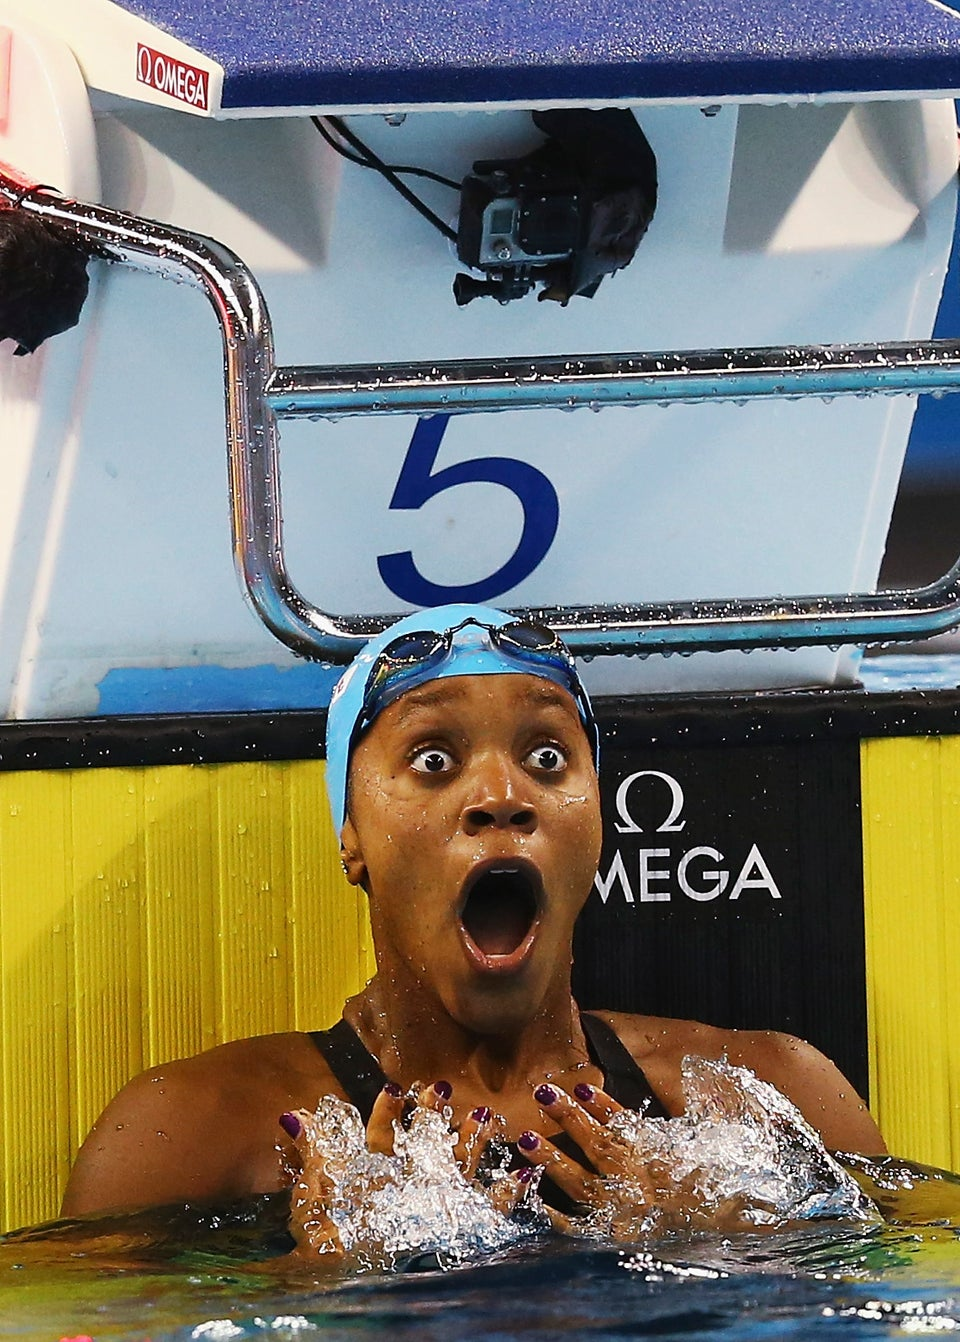 Jamaican Swimmer Alia Atkinson Becomes First Black Woman to Win World Swimming Title